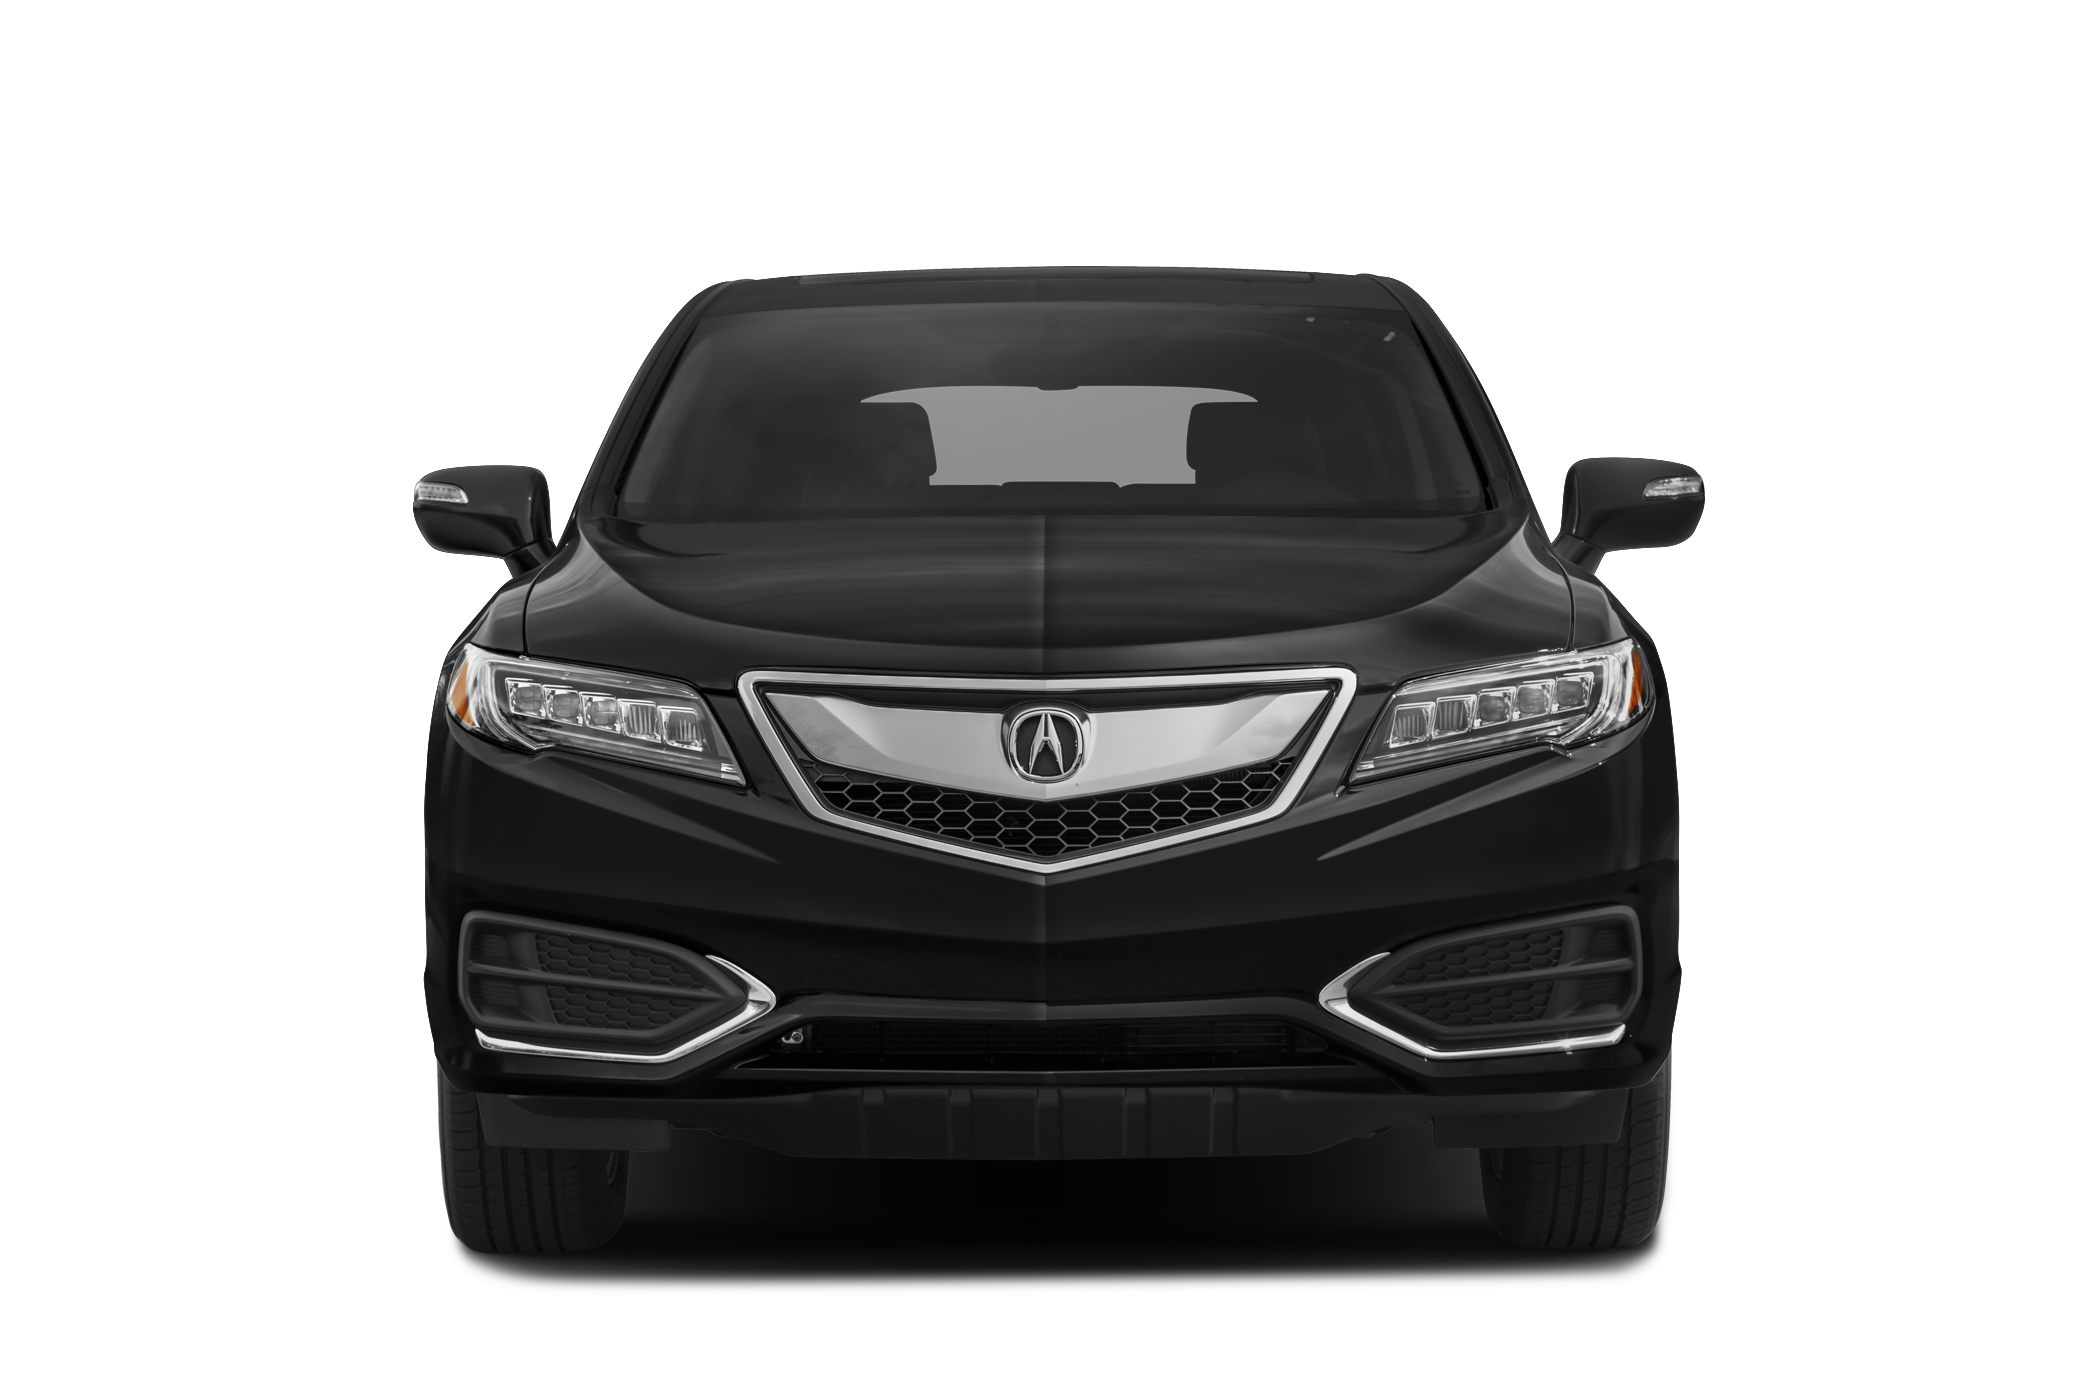 protection frac bumper mdx accessories guard product models acura rdx fits front broadfeet